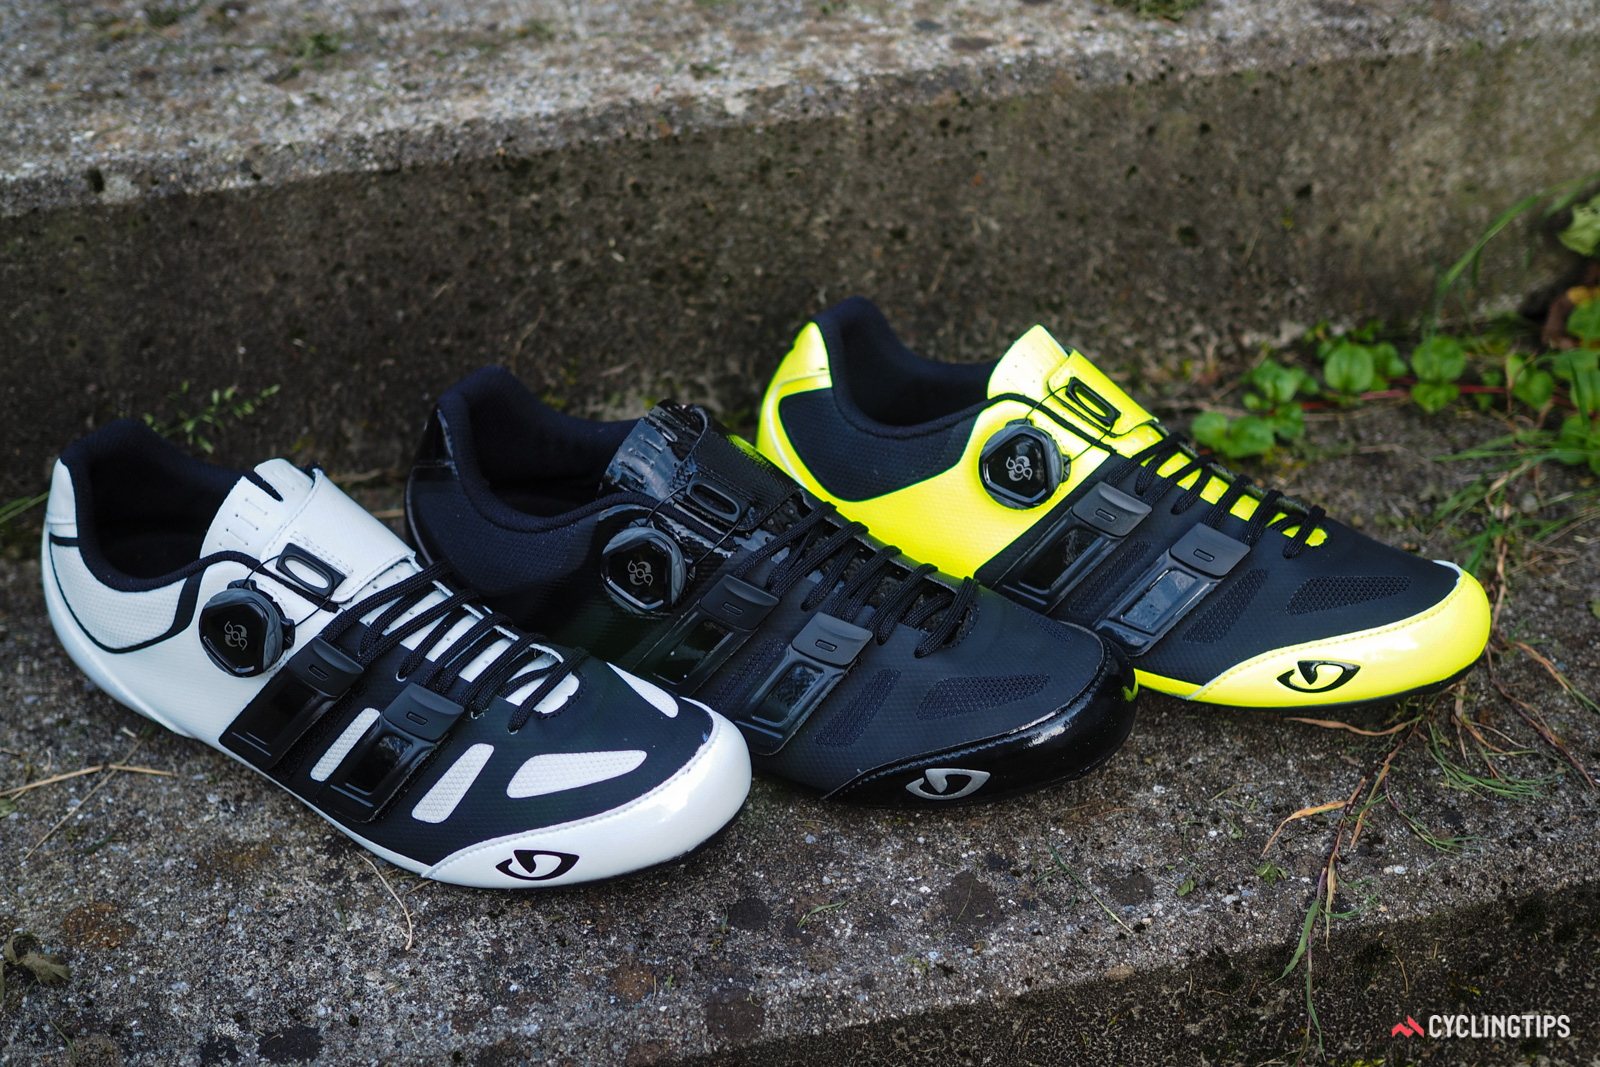 The Giro Sentrie Techlace will be available in three different colors. Retail price will be US$250 / €250 when they begin arriving in shops in October. UK and AU pricing is TBC.